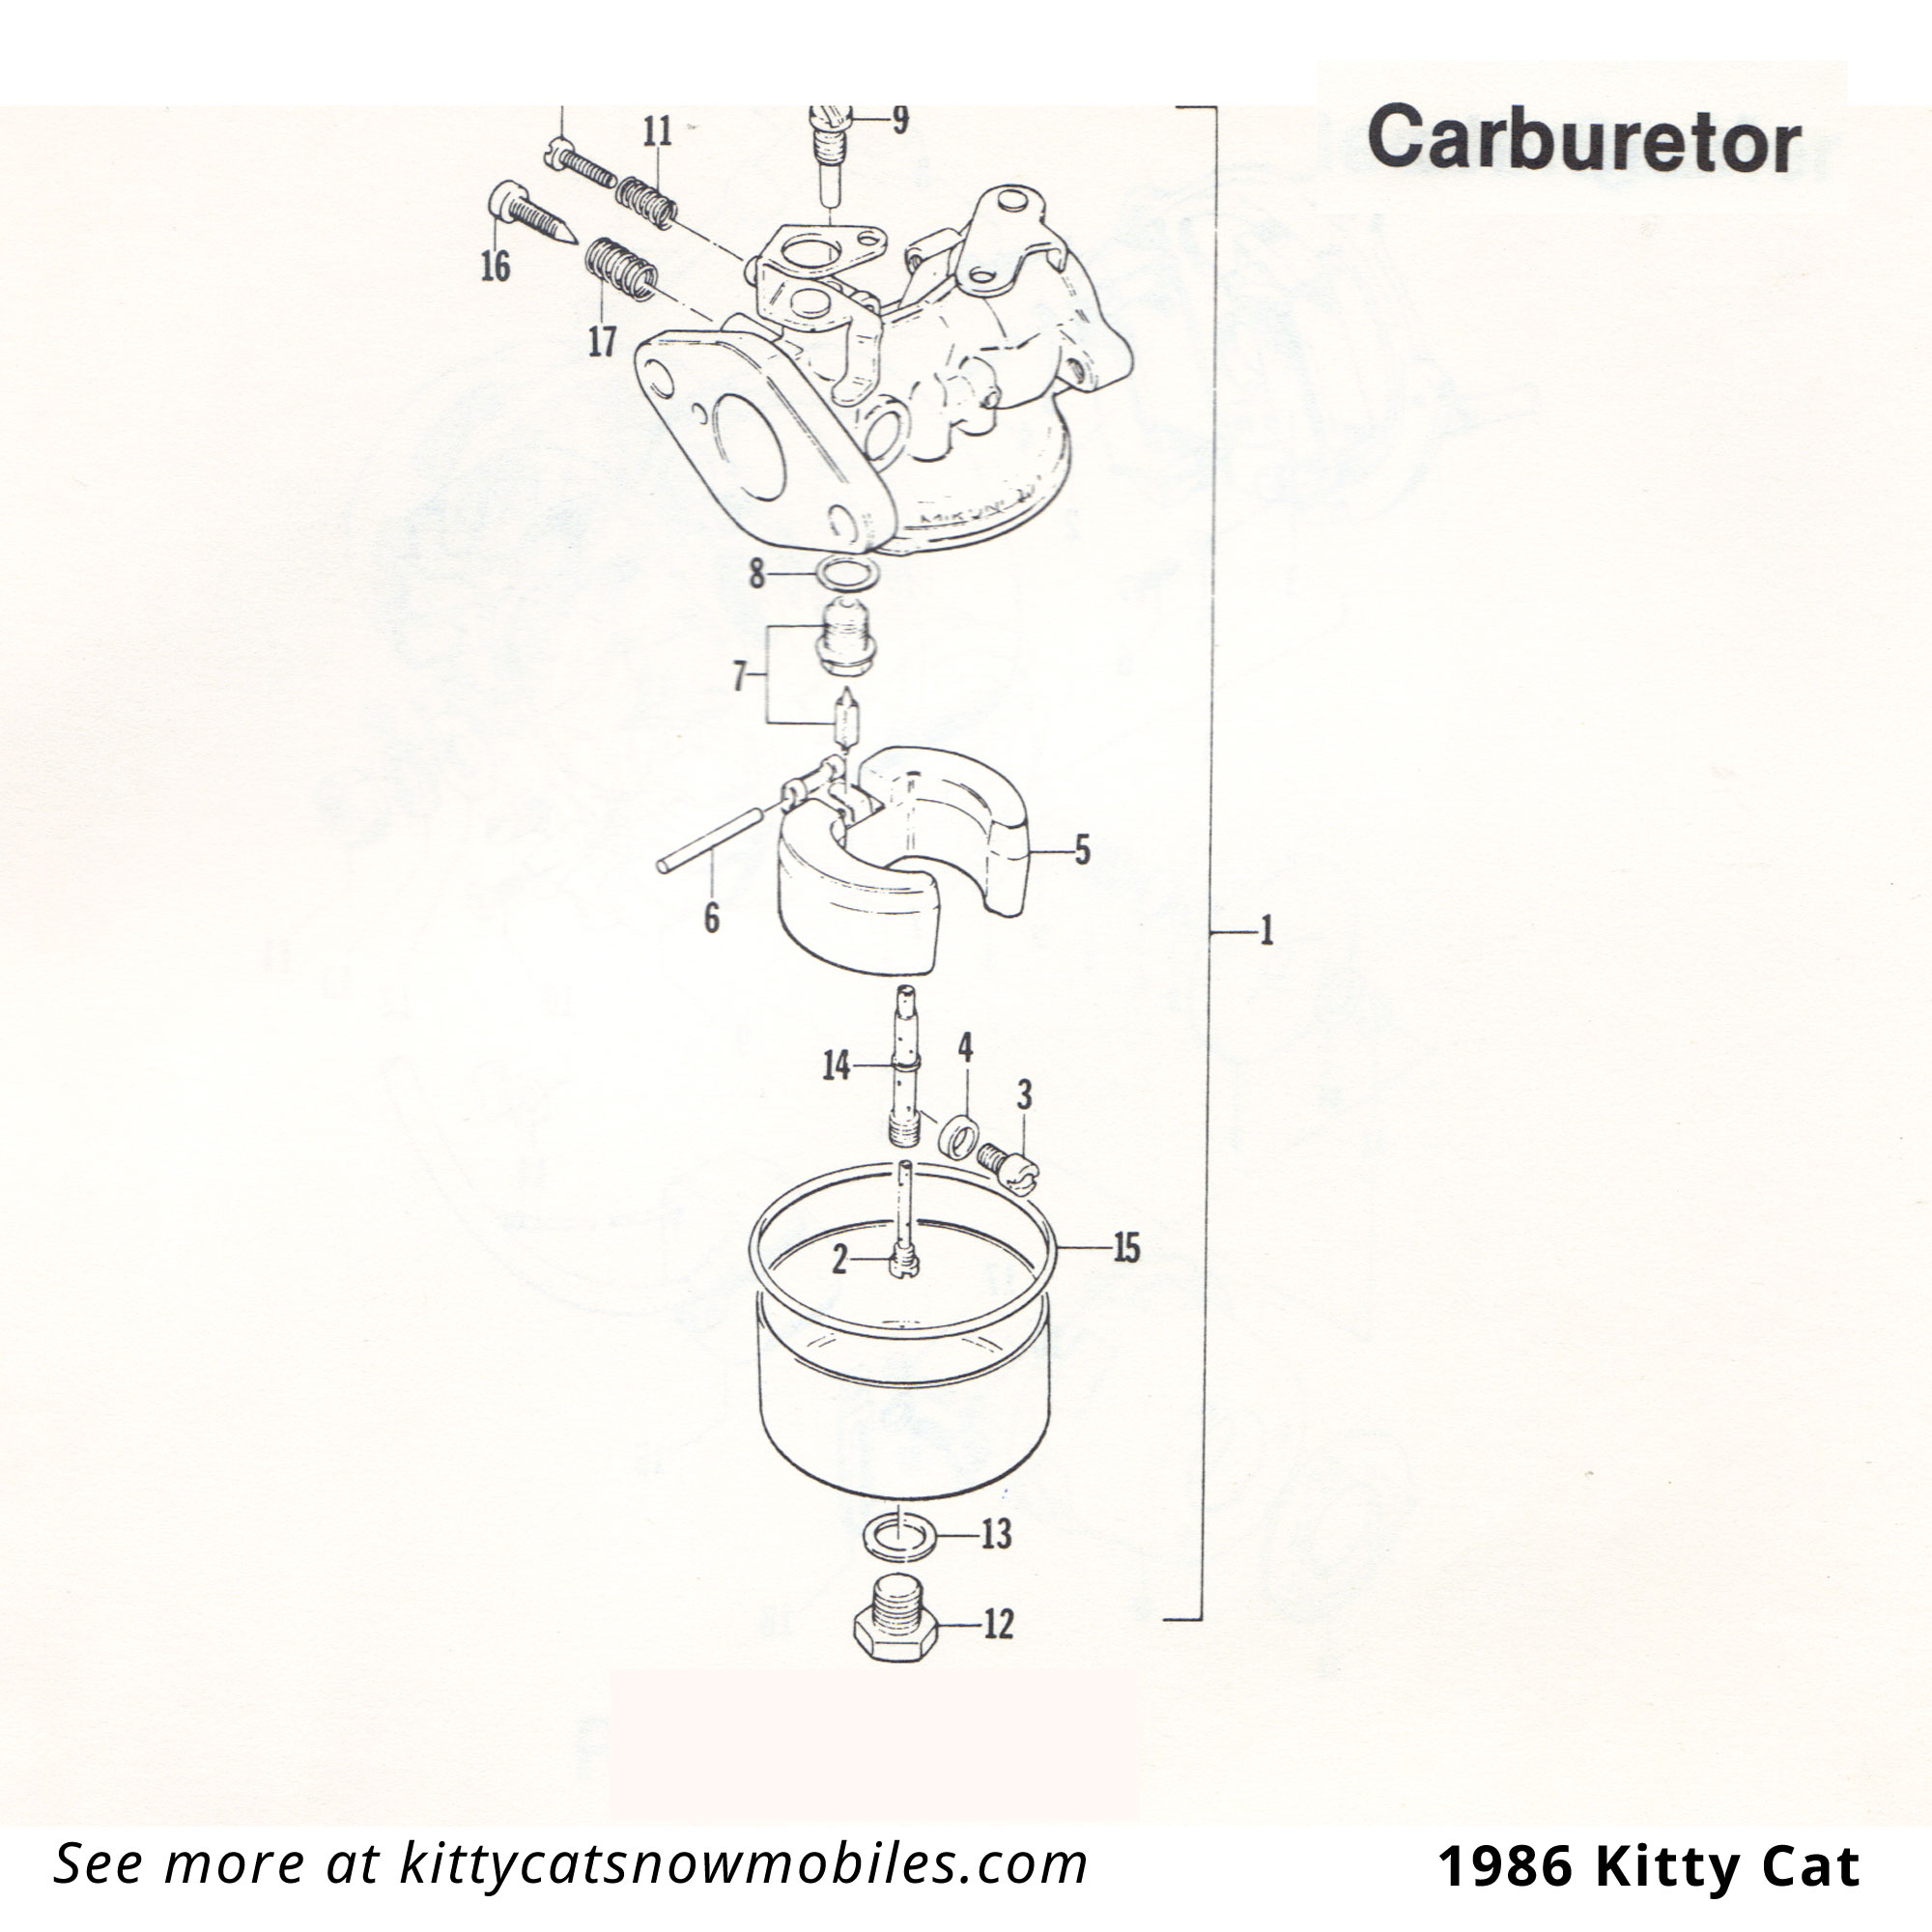 86 Kitty Cat Carburetor Parts